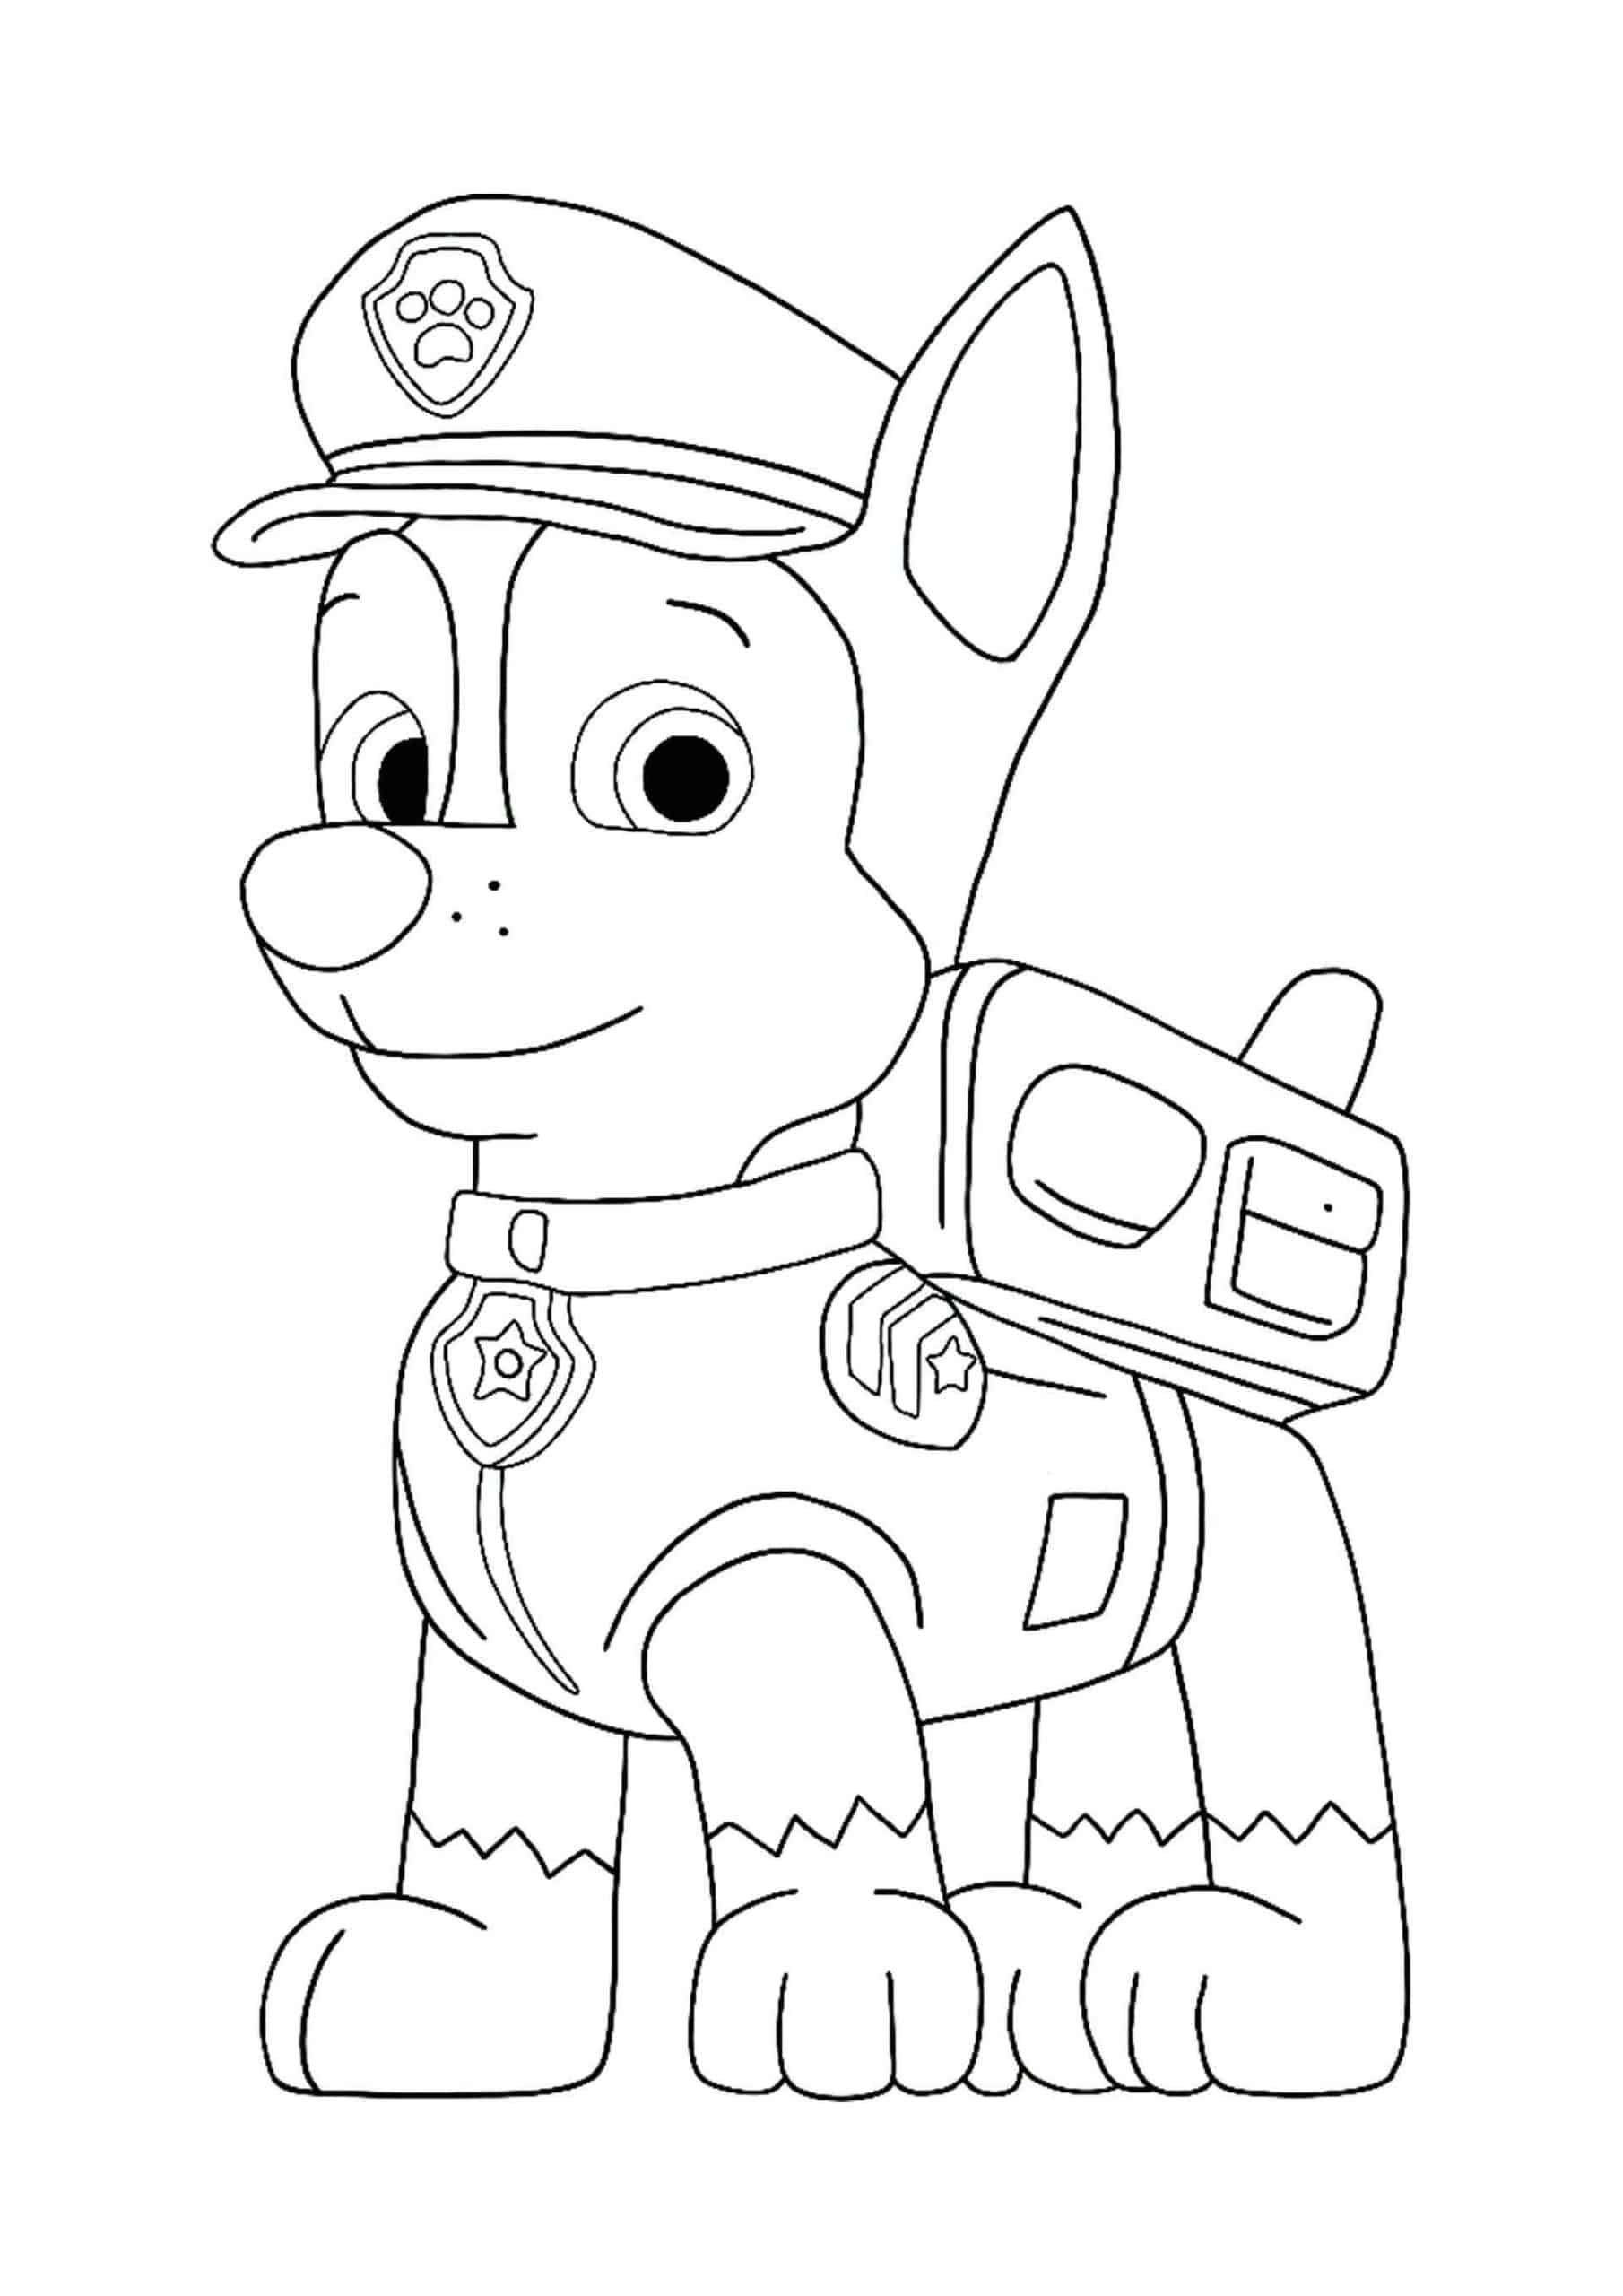 Paw Patrol Chase coloring page in 2020 Paw patrol